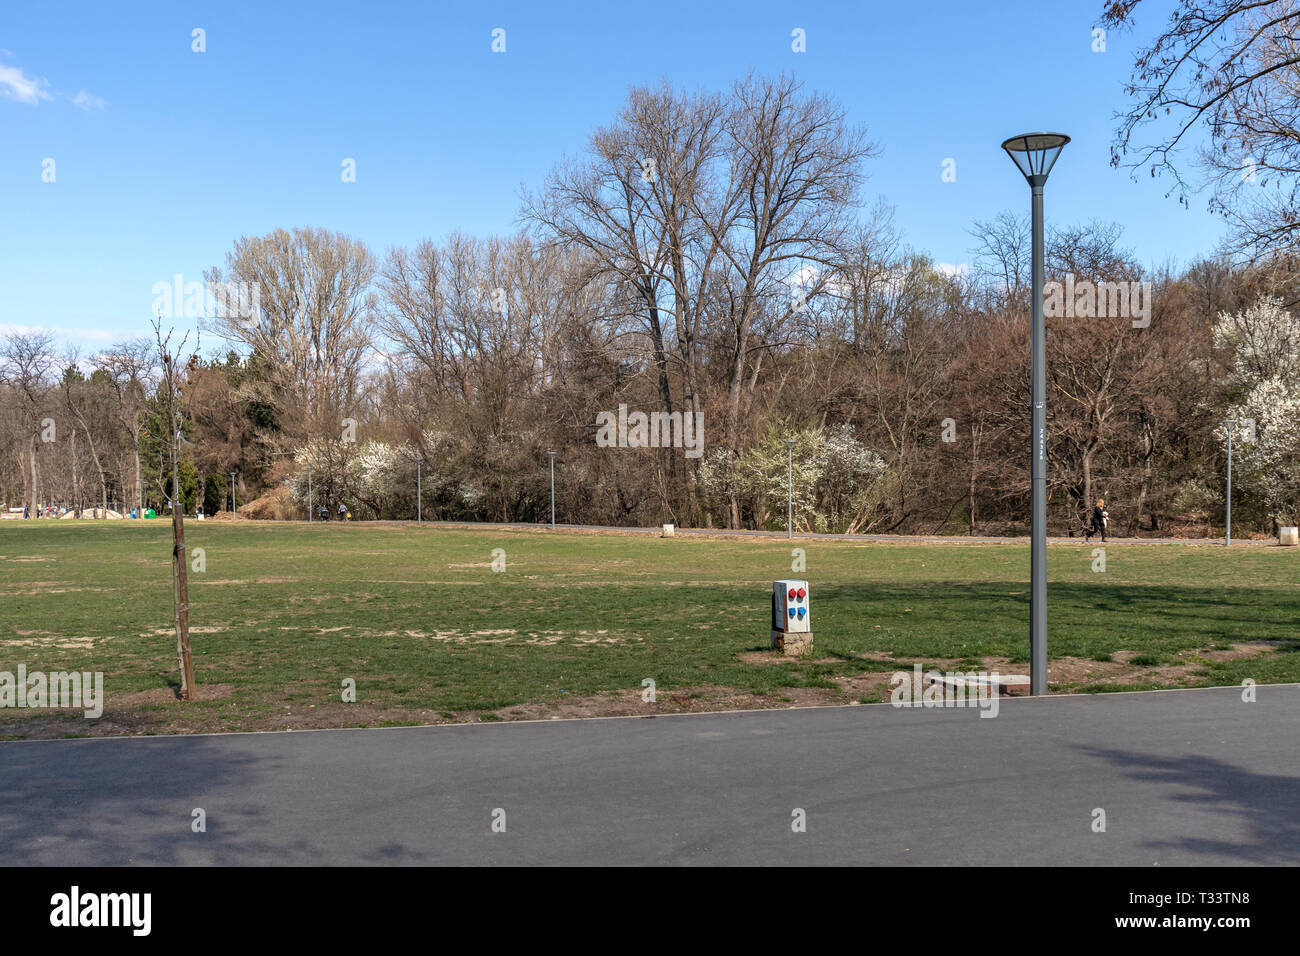 SOFIA, BULGARIA - MARCH 27, 2019: Amazing Spring landscape of South Park in city of Sofia, Bulgaria - Stock Image